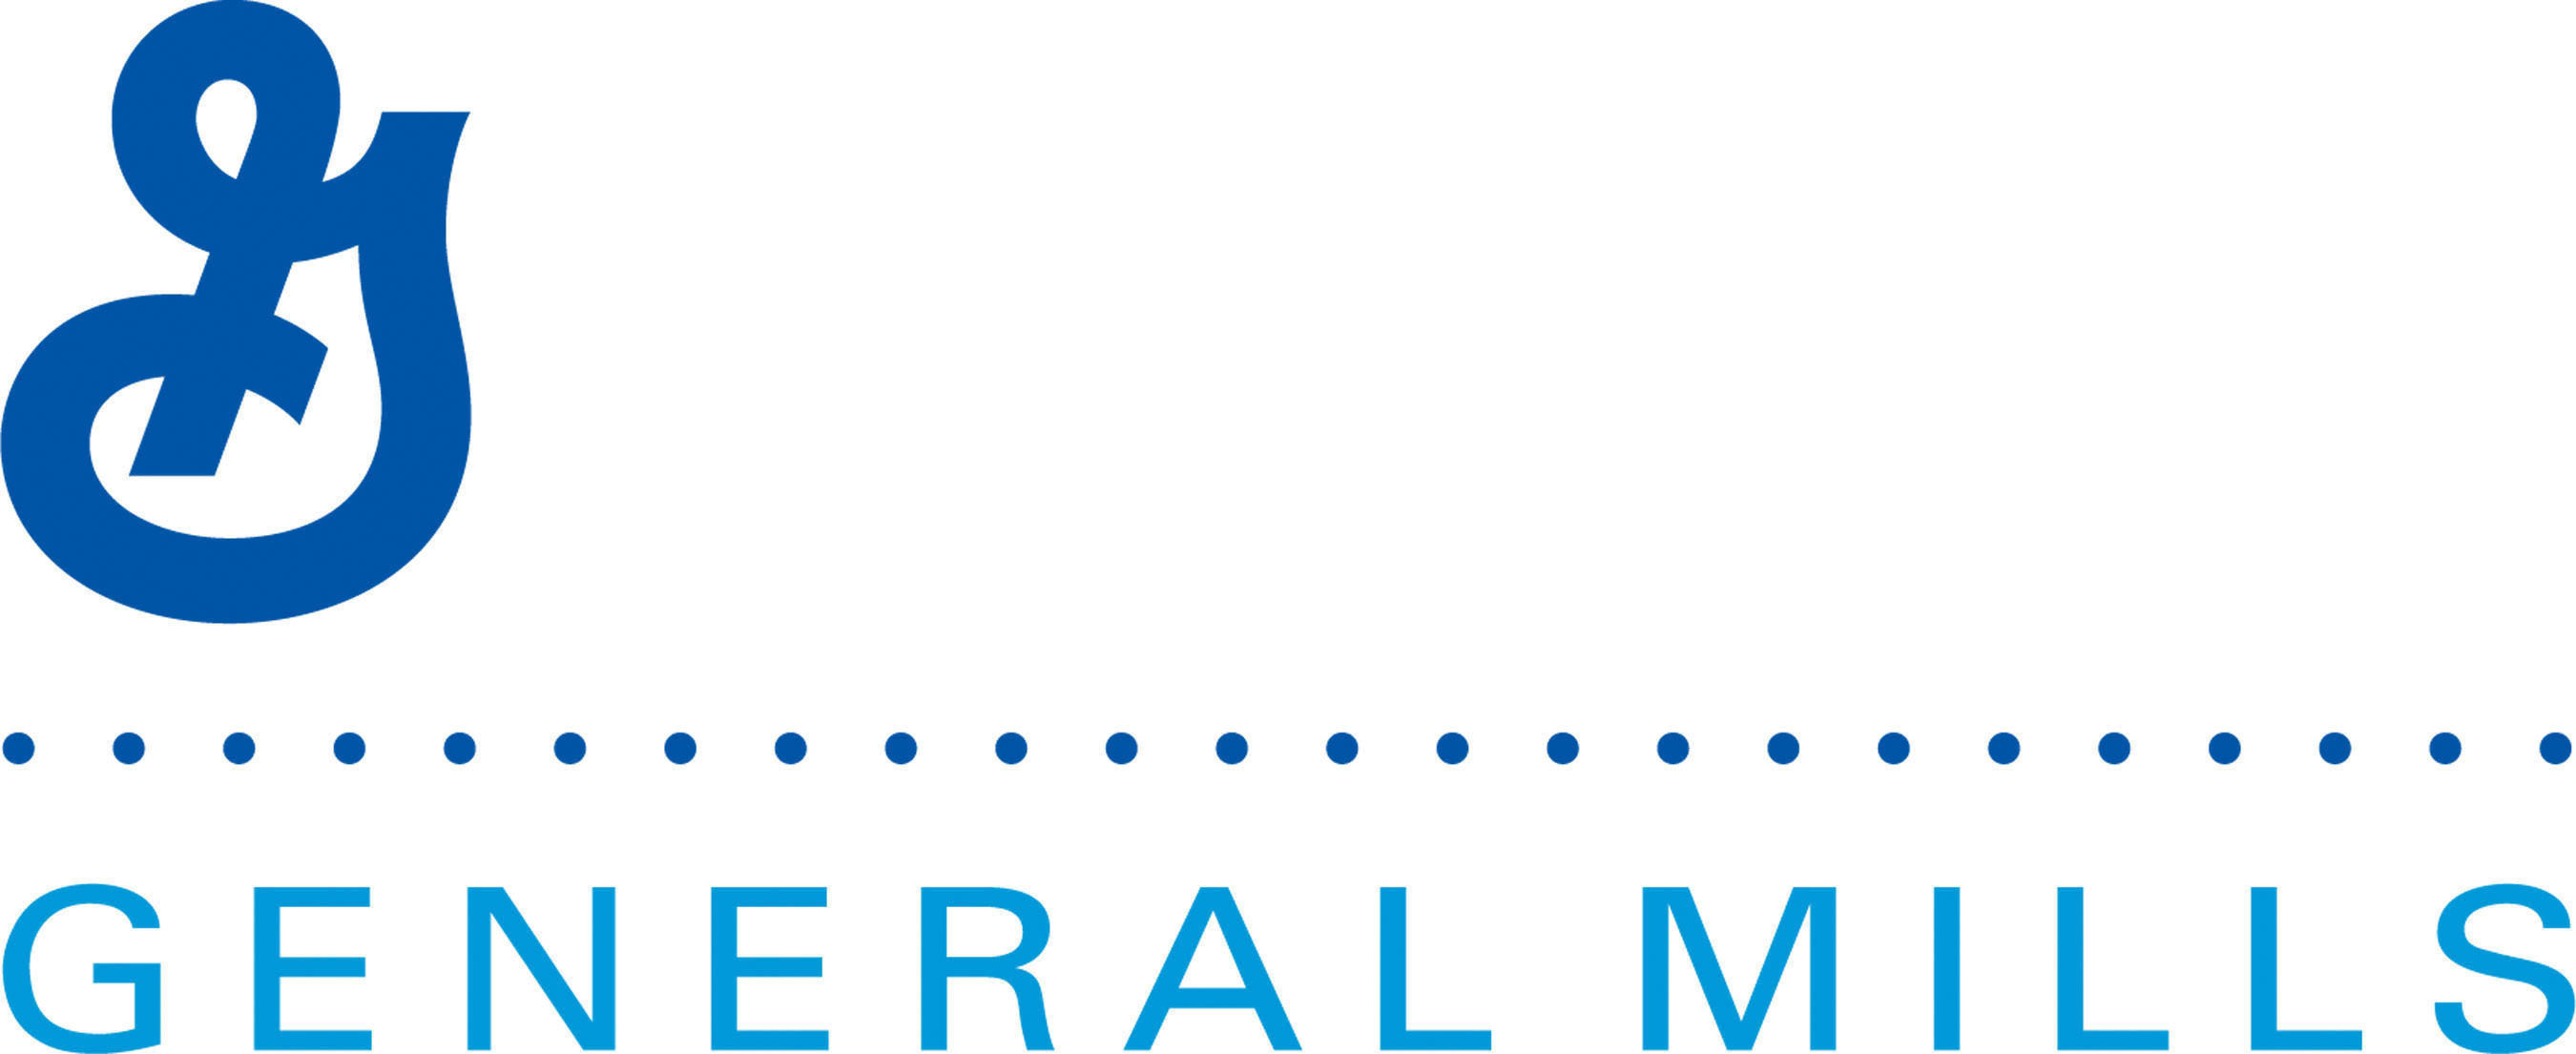 General Mills is one of the world's leading food companies, operating in more than 100 countries around the world. Its brands include Cheerios, Fiber One, Haagen-Dazs, Nature Valley, Yoplait, Betty Crocker, Pillsbury, Old El Paso, Wanchai Ferry, Yoki and more. Headquartered in Minneapolis, Minn., USA, General Mills had fiscal 2015 worldwide sales of US $18.7 billion, including the company's US $1.1 billion proportionate share of joint-venture net sales.